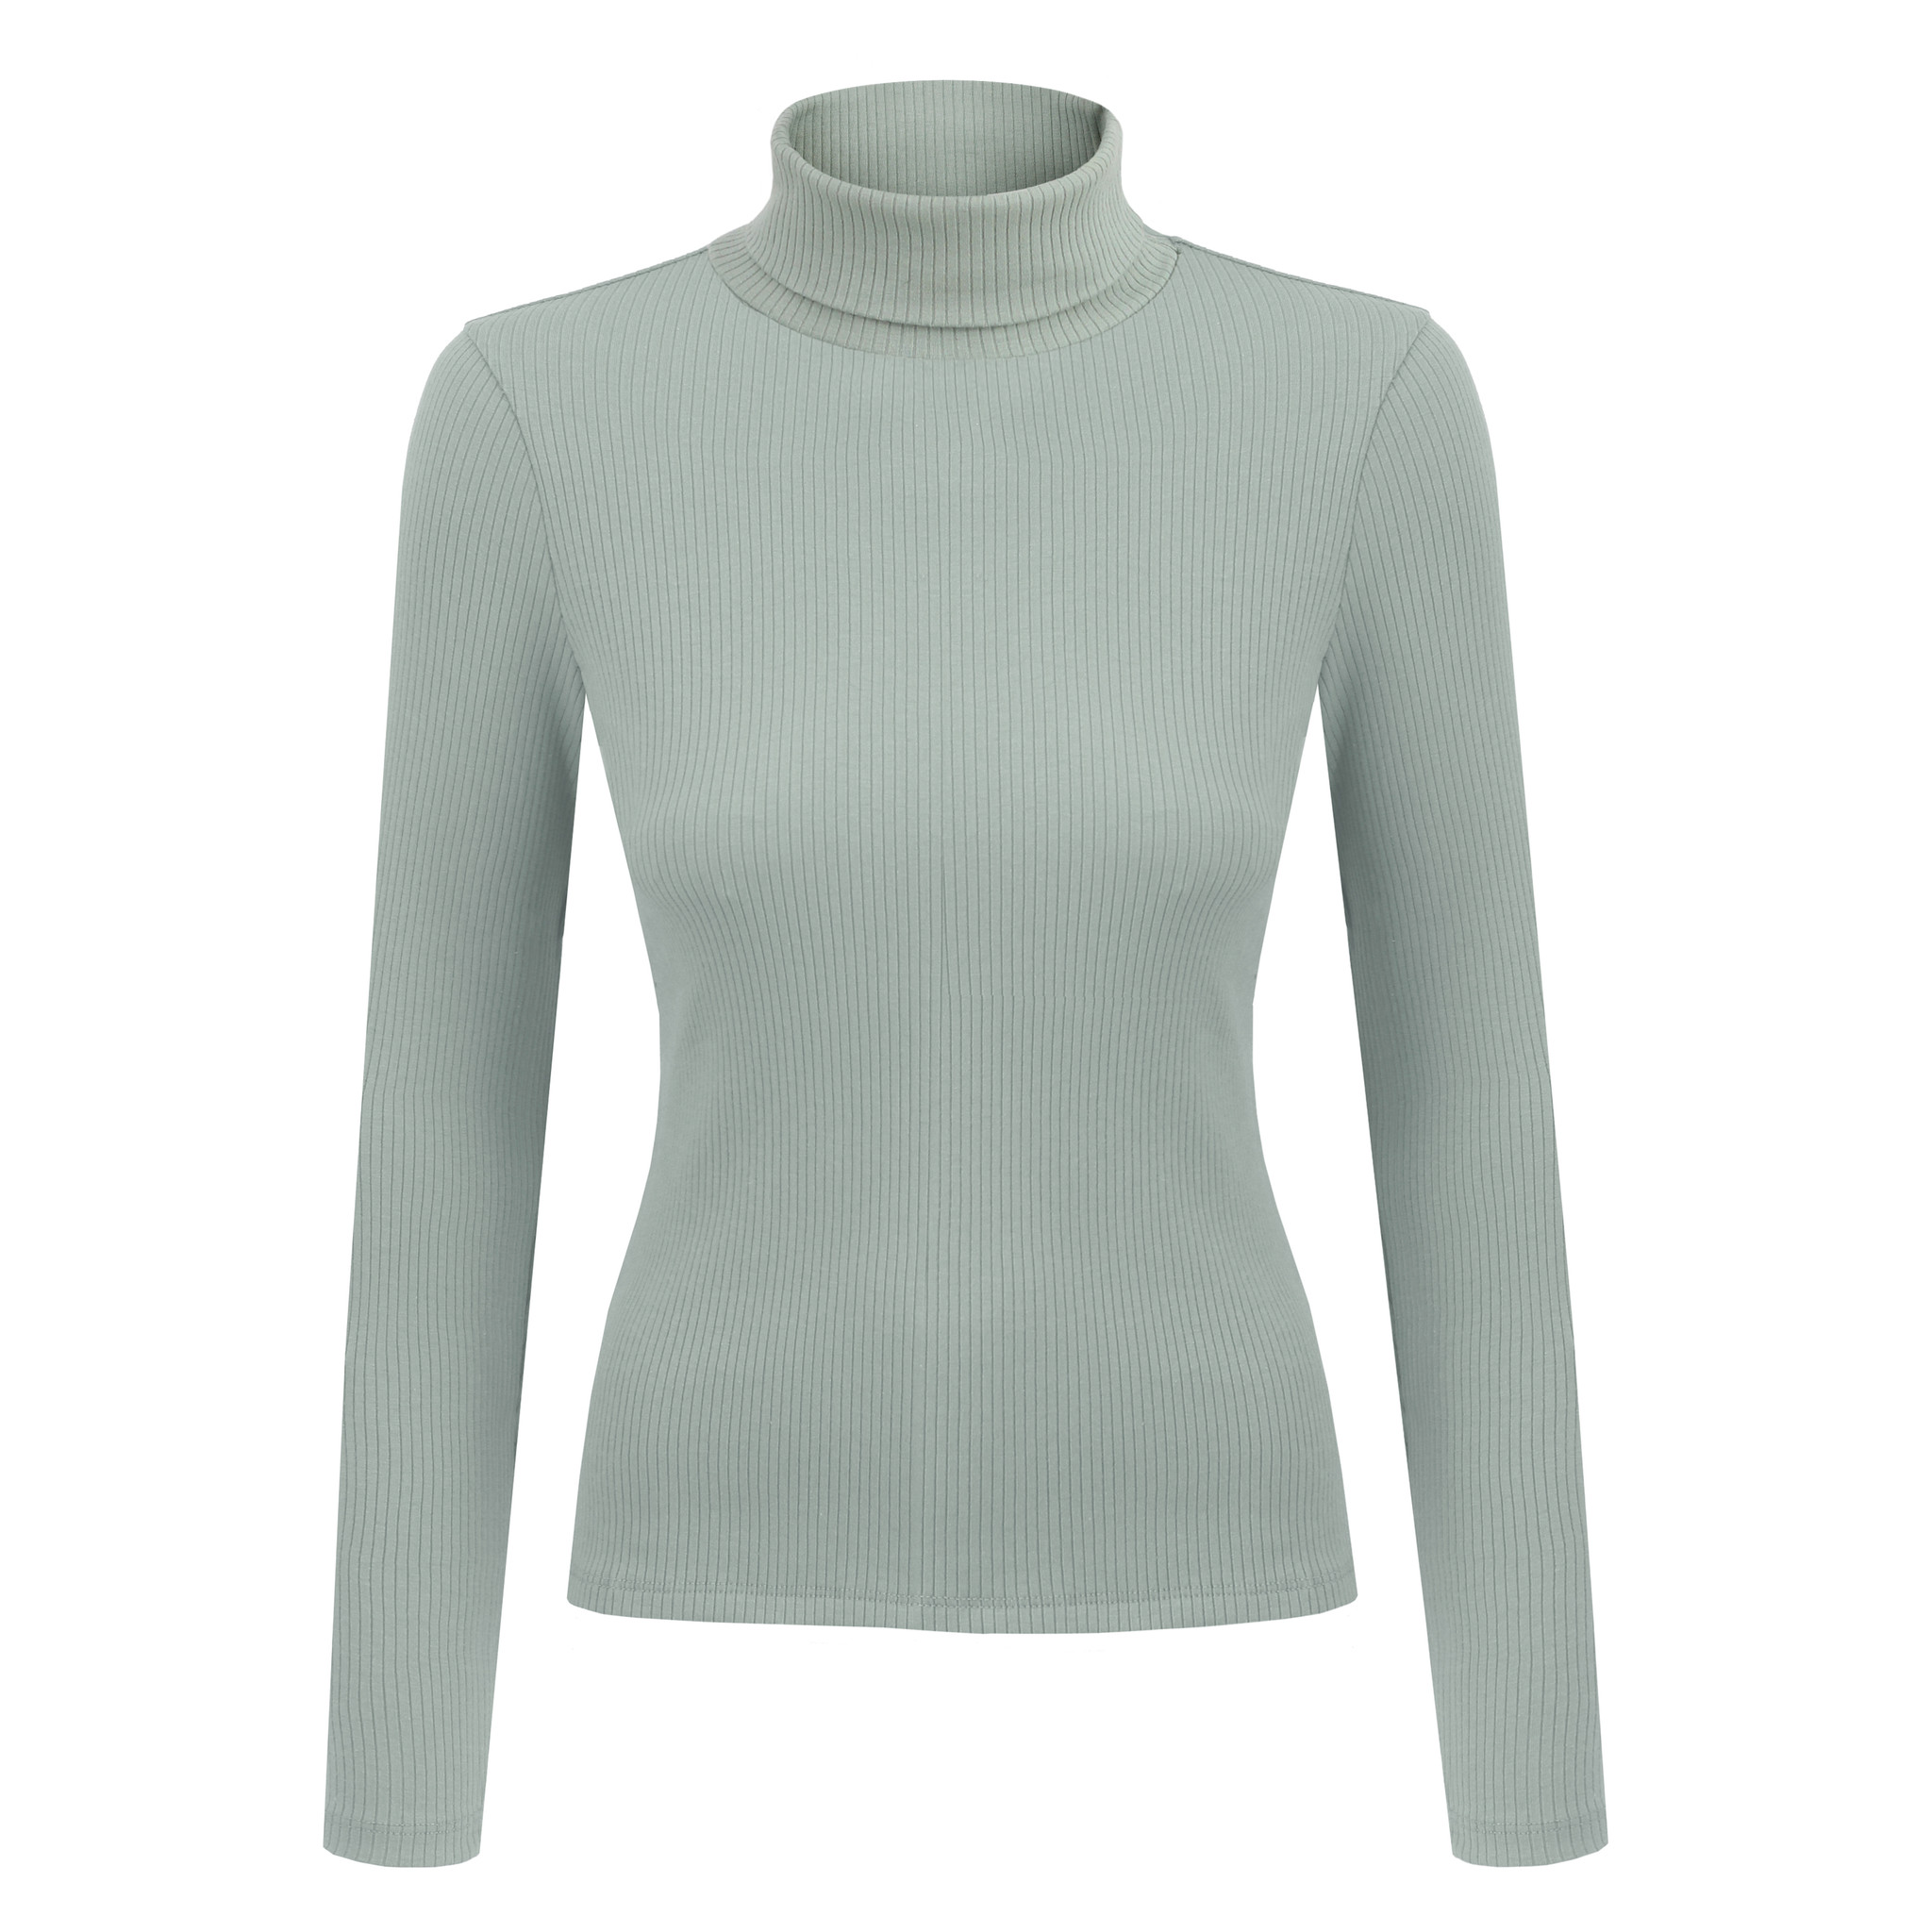 NAGO organic cotton turtleneck / mint | SoBio Beauty Boutique